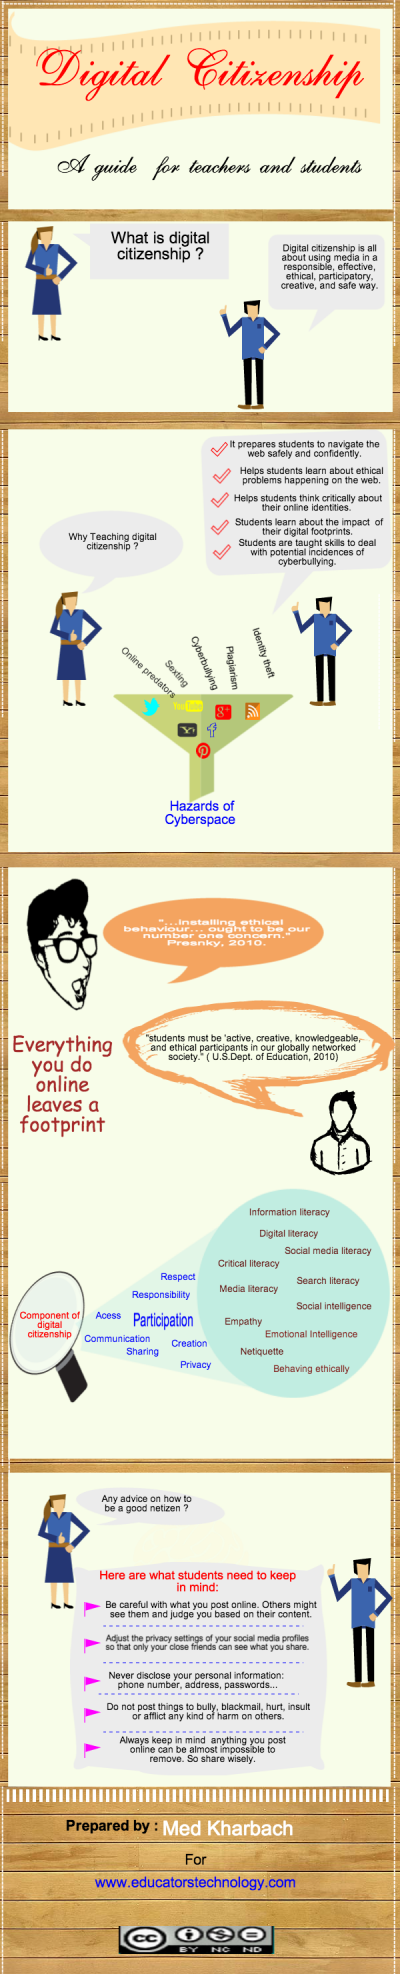 digital citizenship infographic